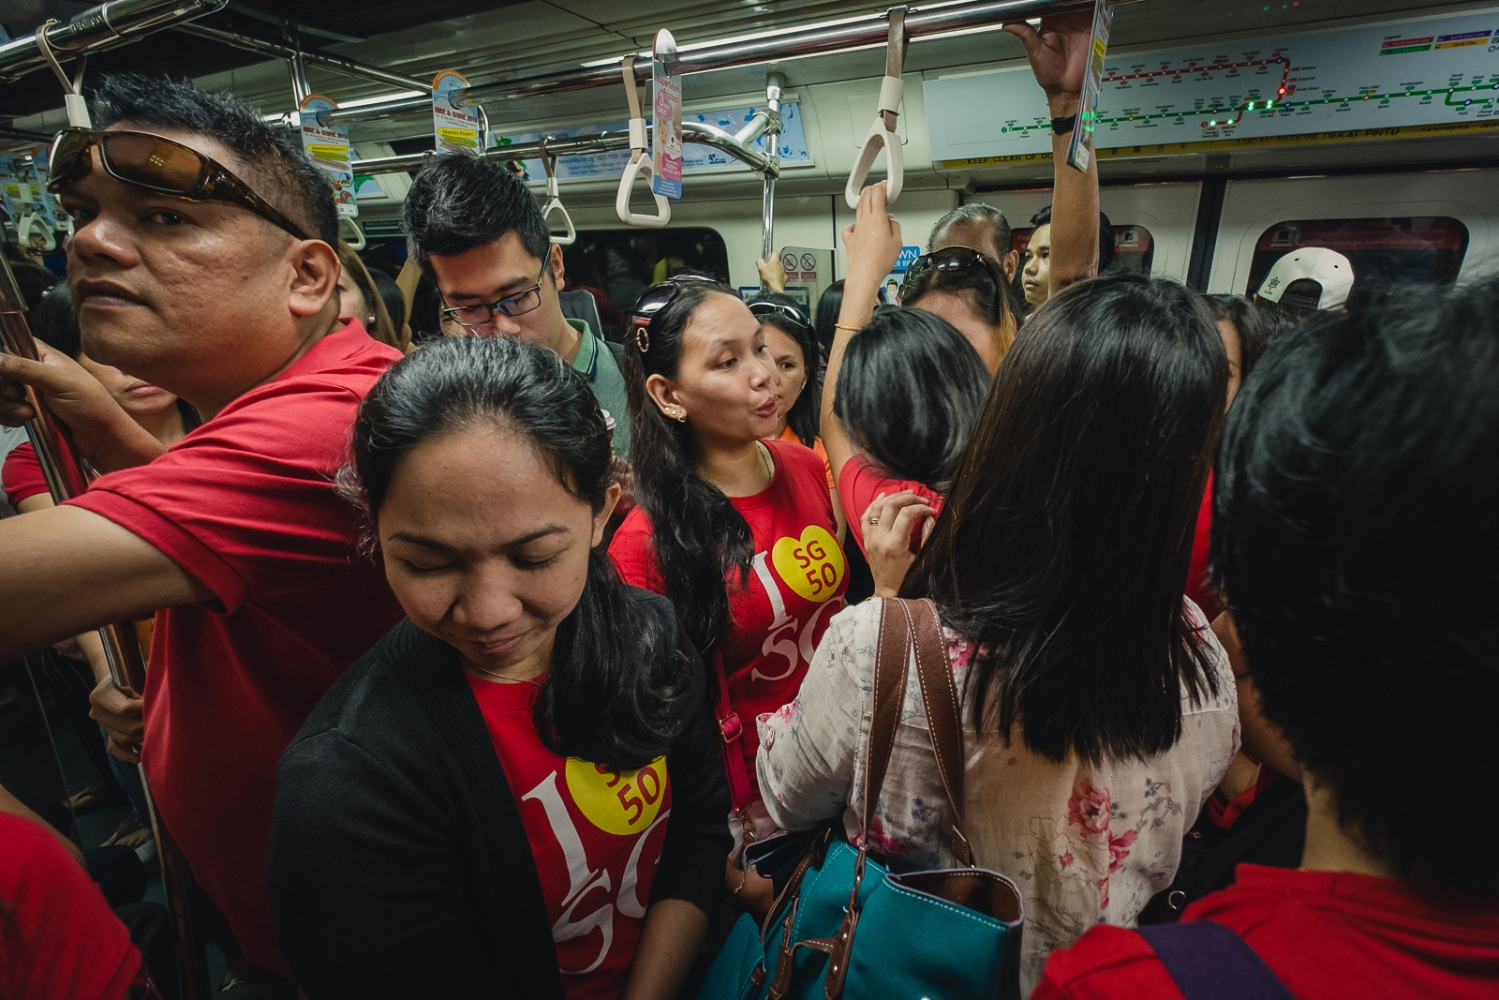 A group of foreign domestic workers wearing 'SG50 I love Singapore' t-shirts mingle with Singaporeans on the MRT public transport system in Singapore,